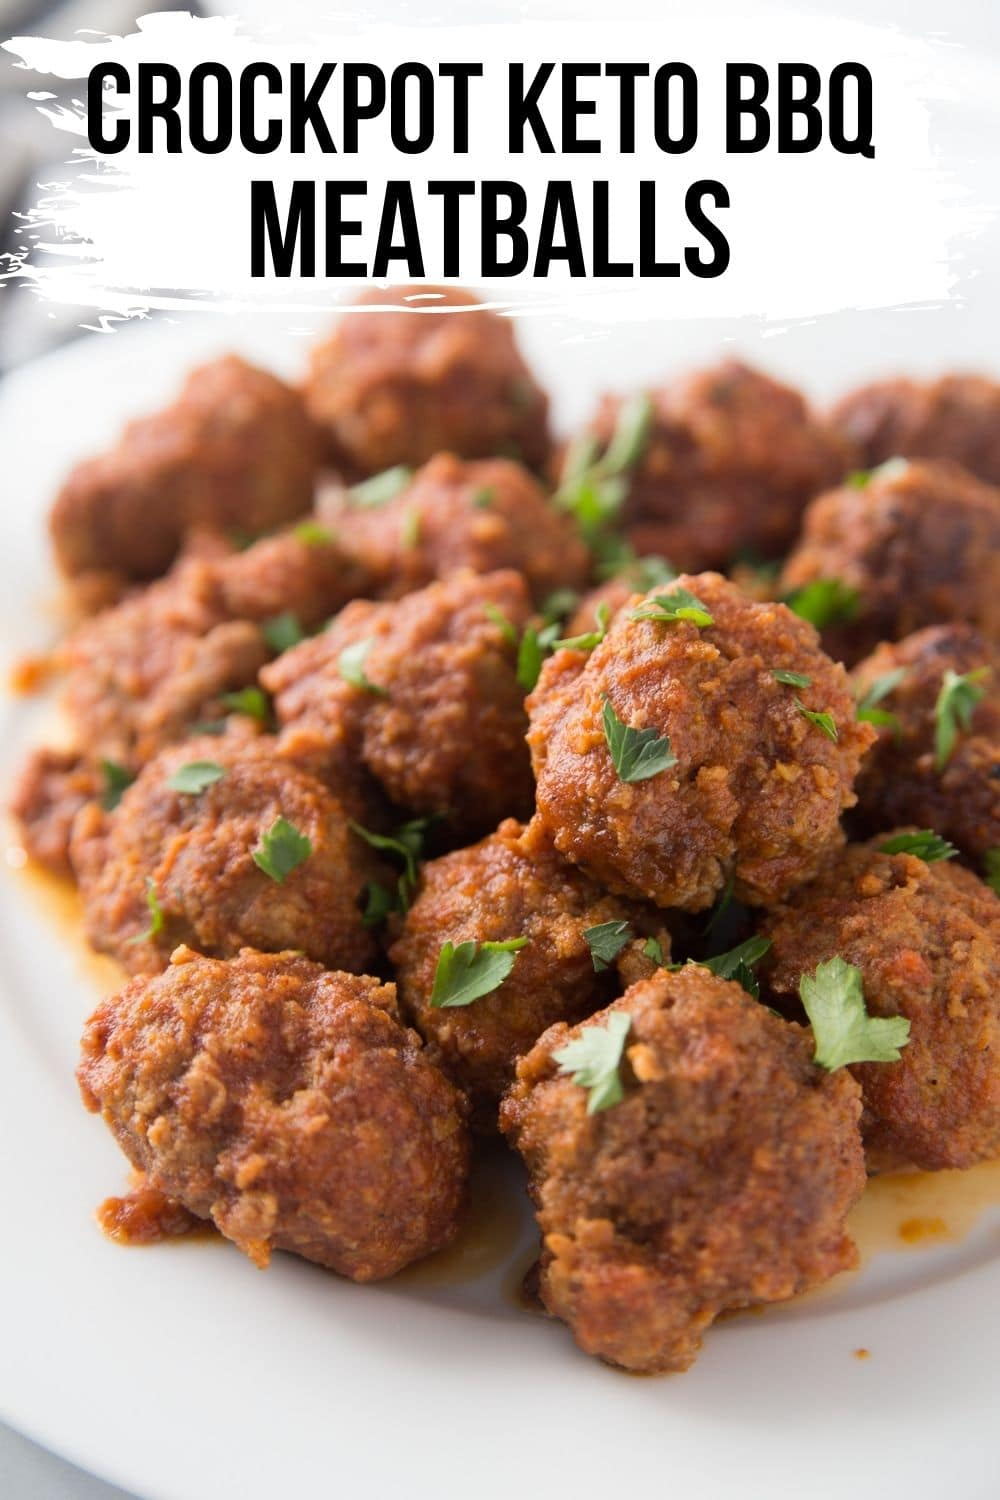 BBQ keto meatballs stacked on a platter